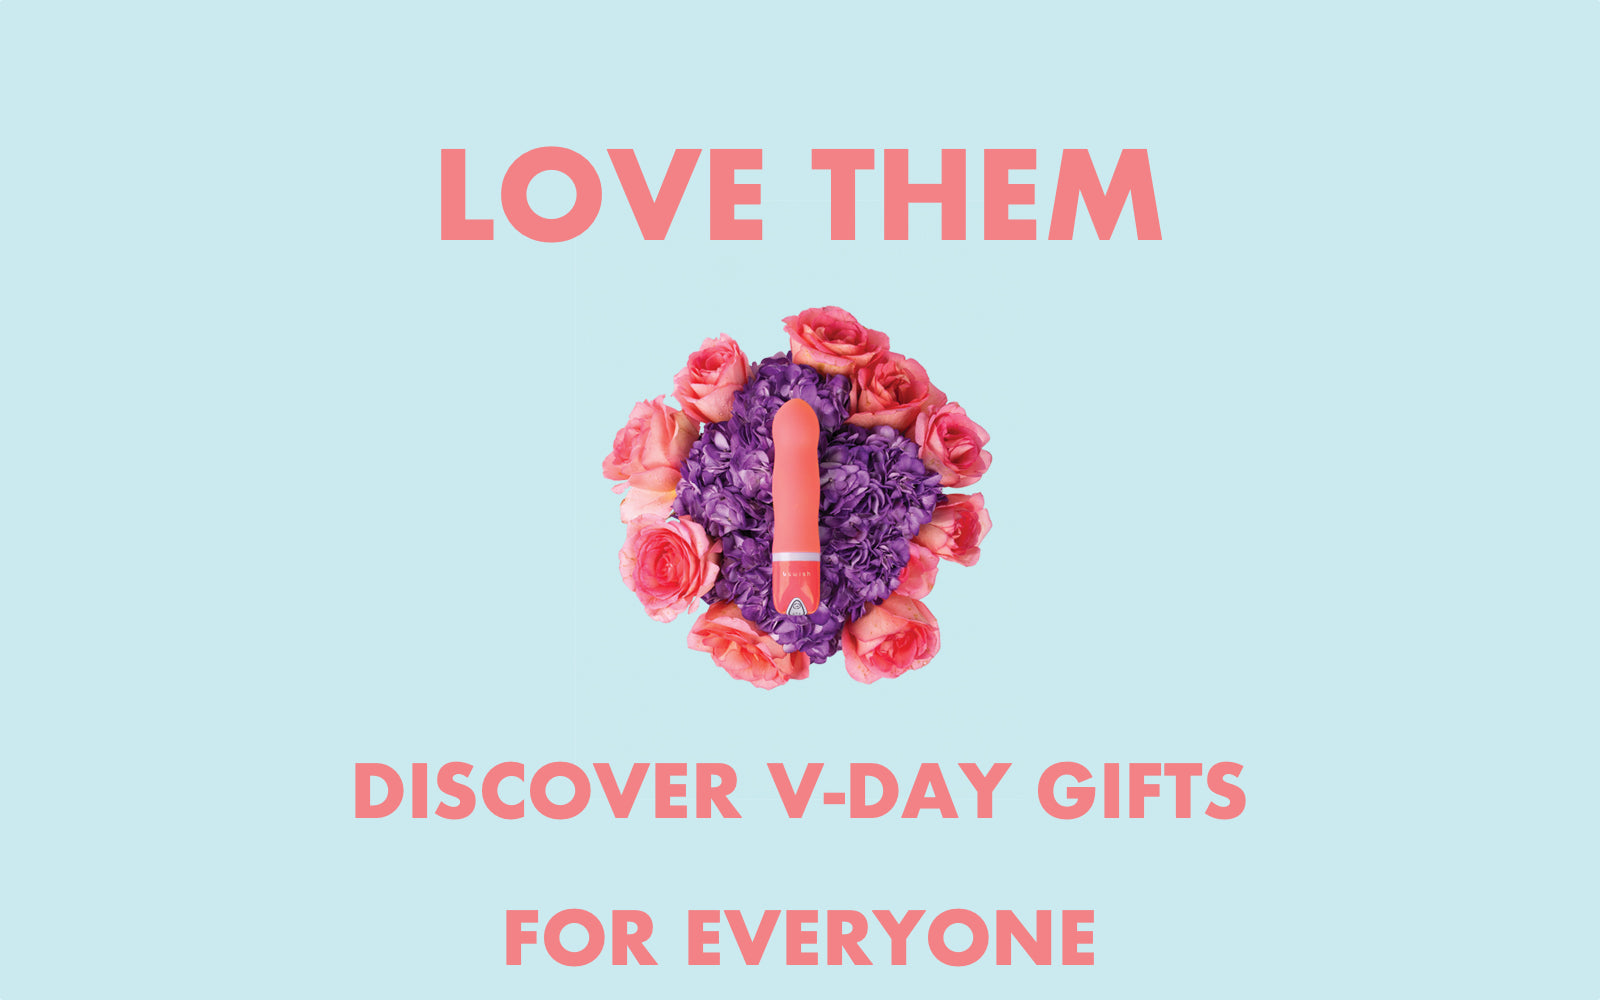 Love Them: Discover V-Day Gifts For Everyone - Rolik®